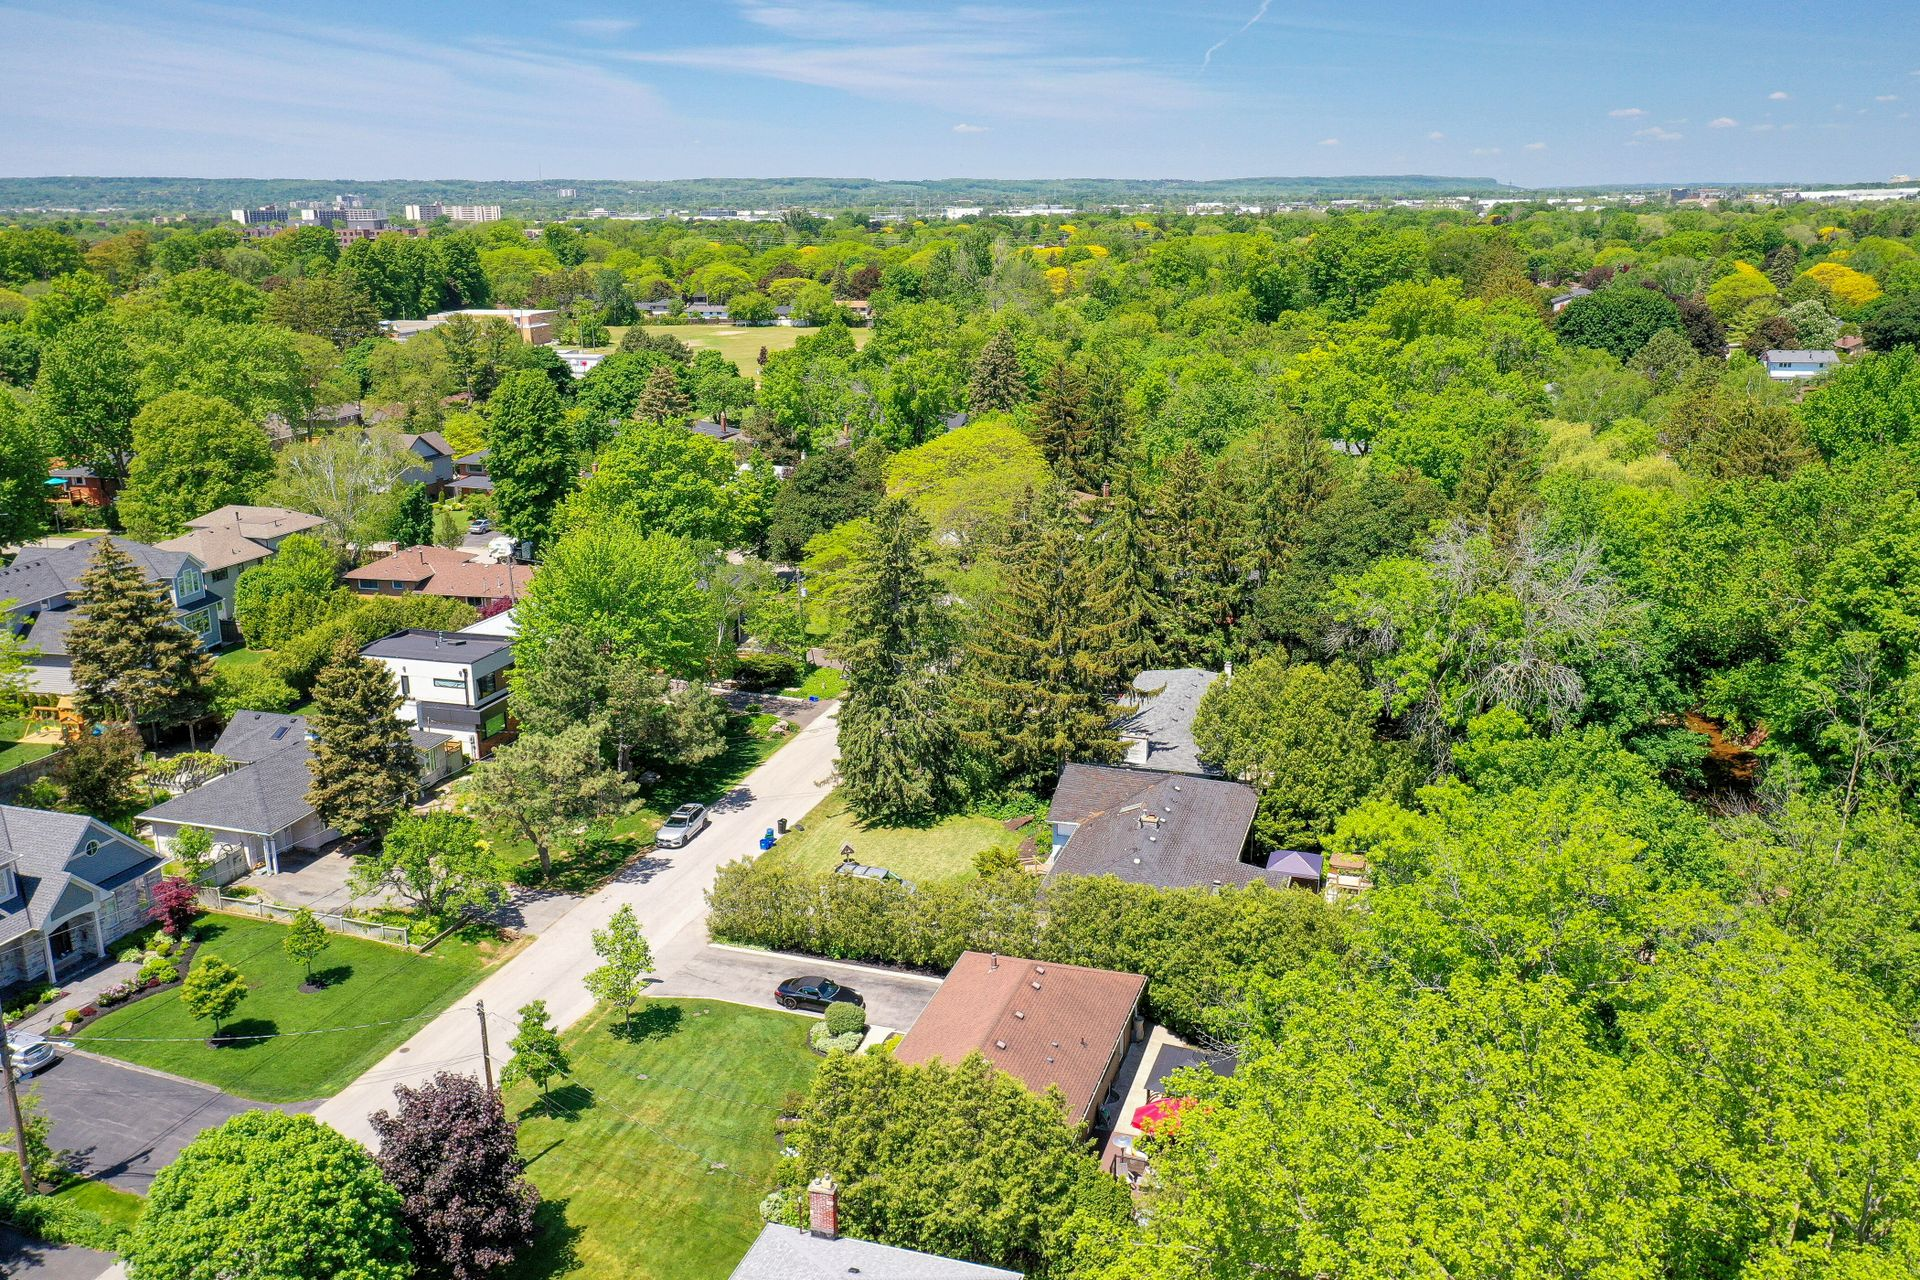 249-lakeview-ave-burlington-aerial-view-to-school at 249 Lakeview Ave, Burlington,